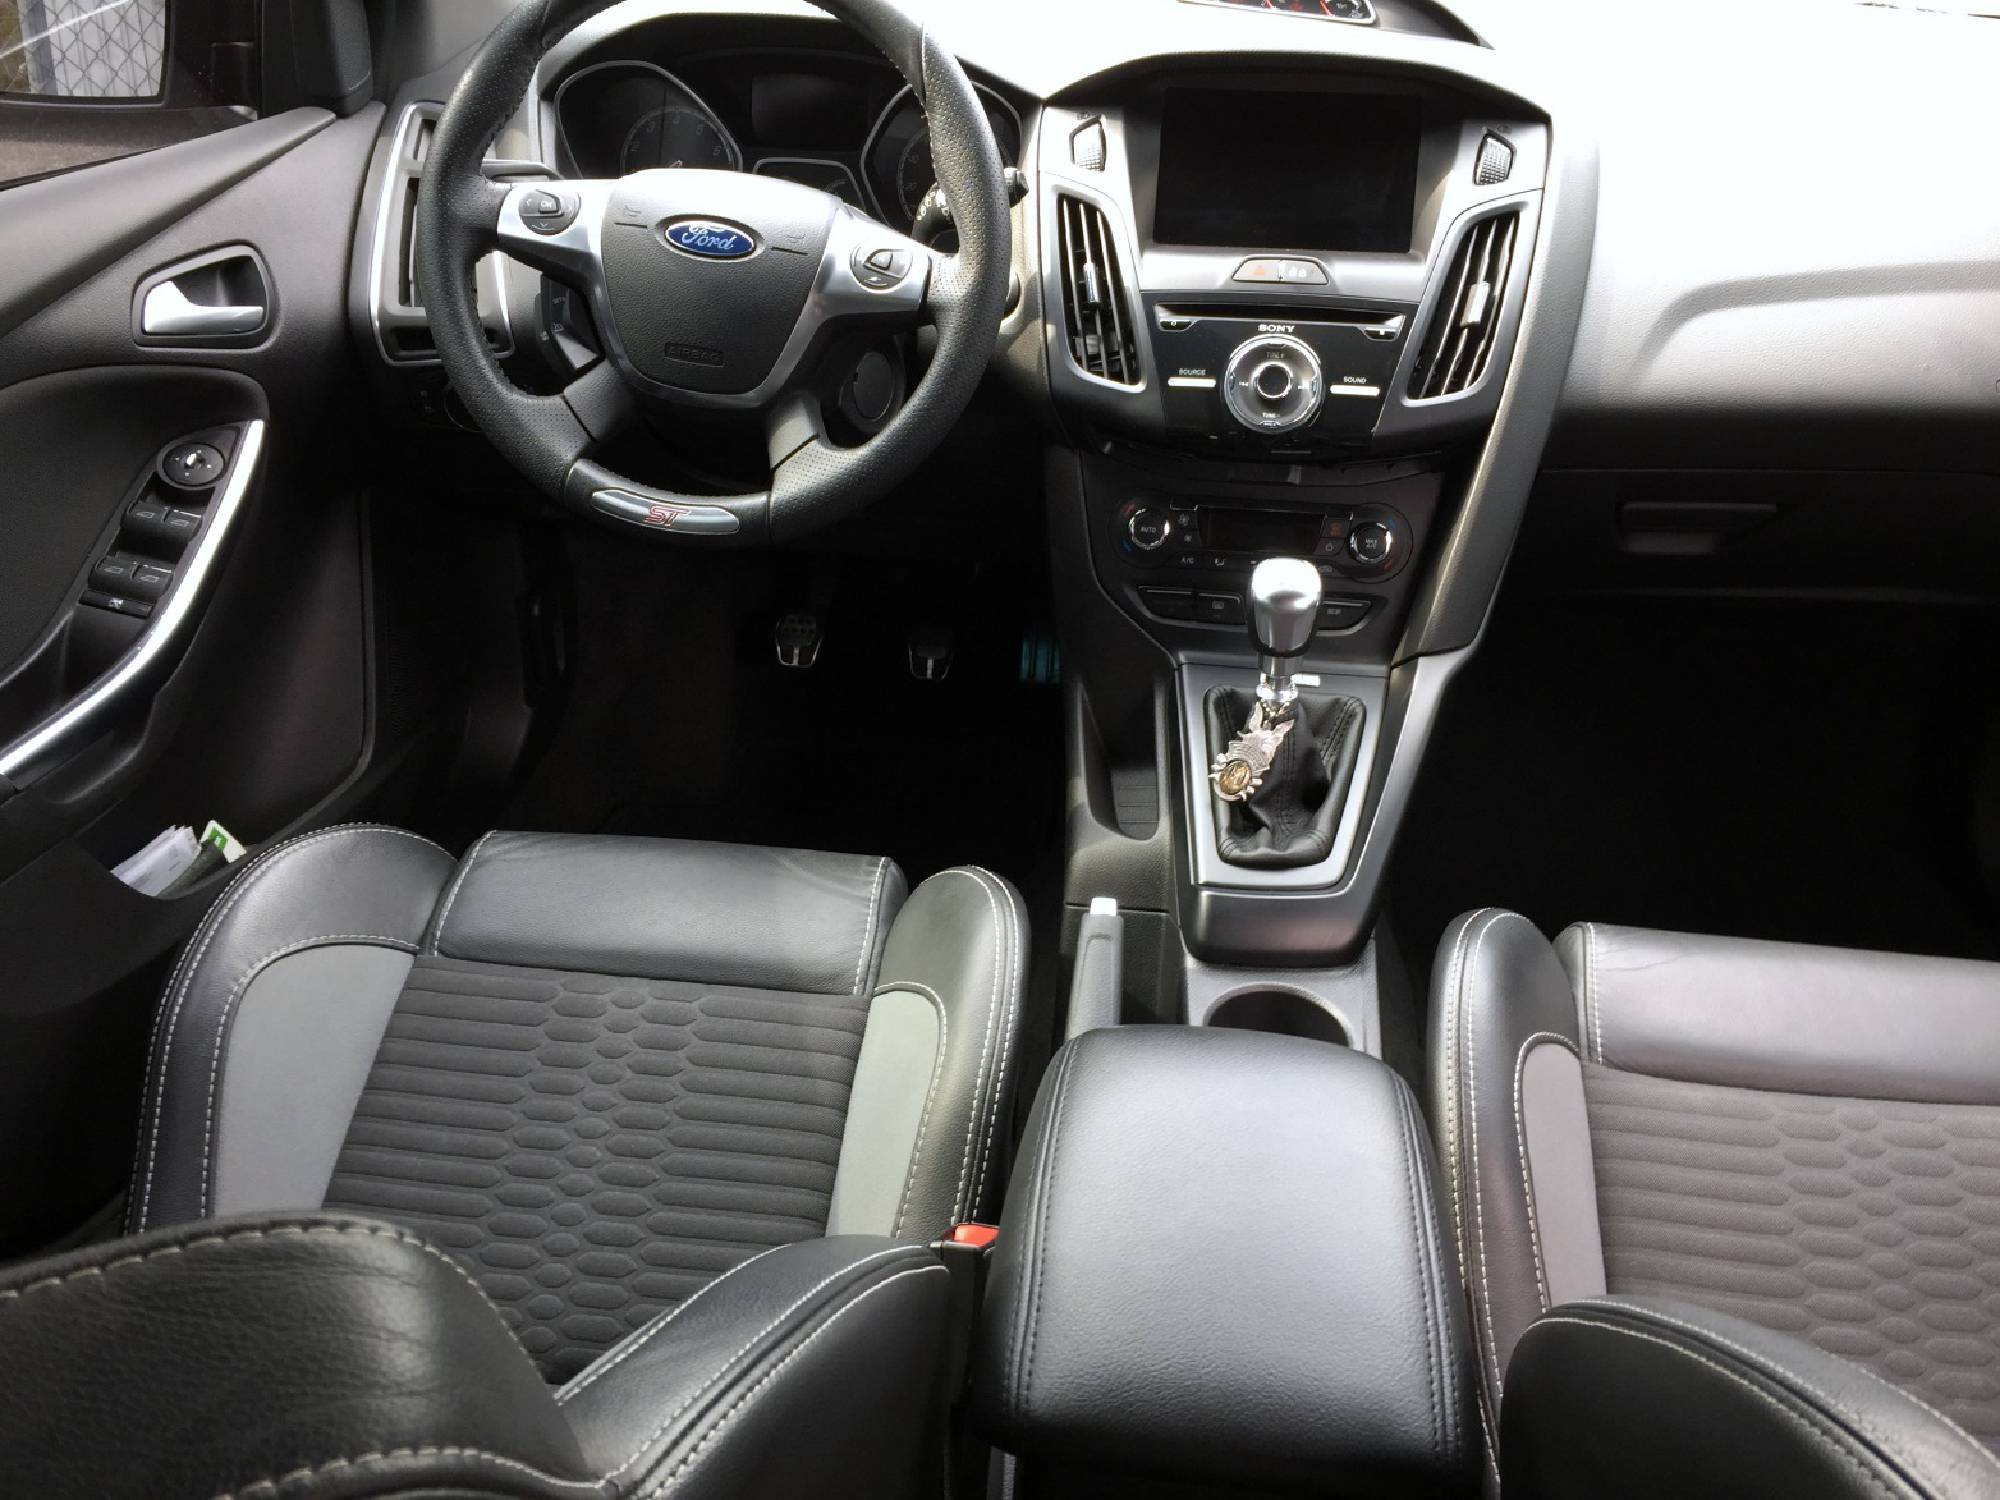 Interior Auto Detailing | NKY Mobile Auto Detailing Service